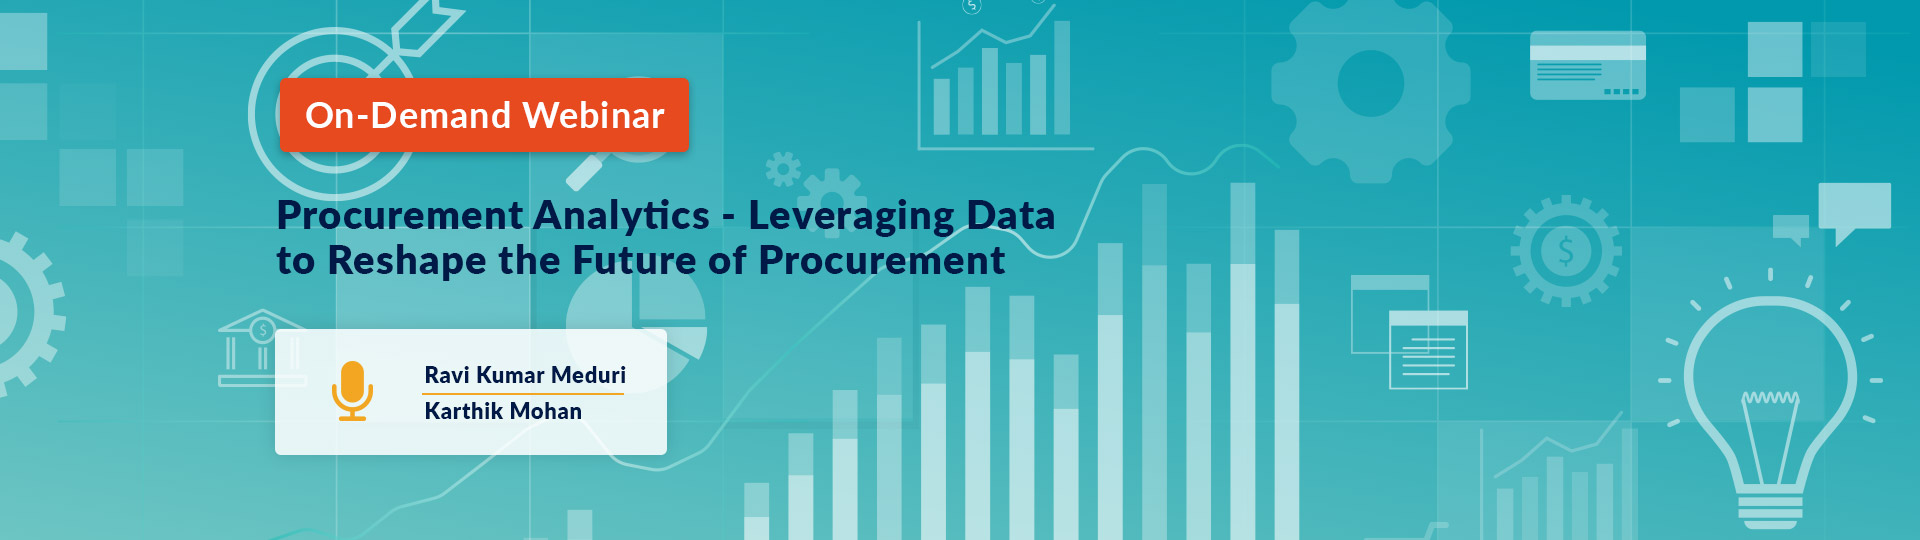 Procurement-Analytics-Webinar-banner-img